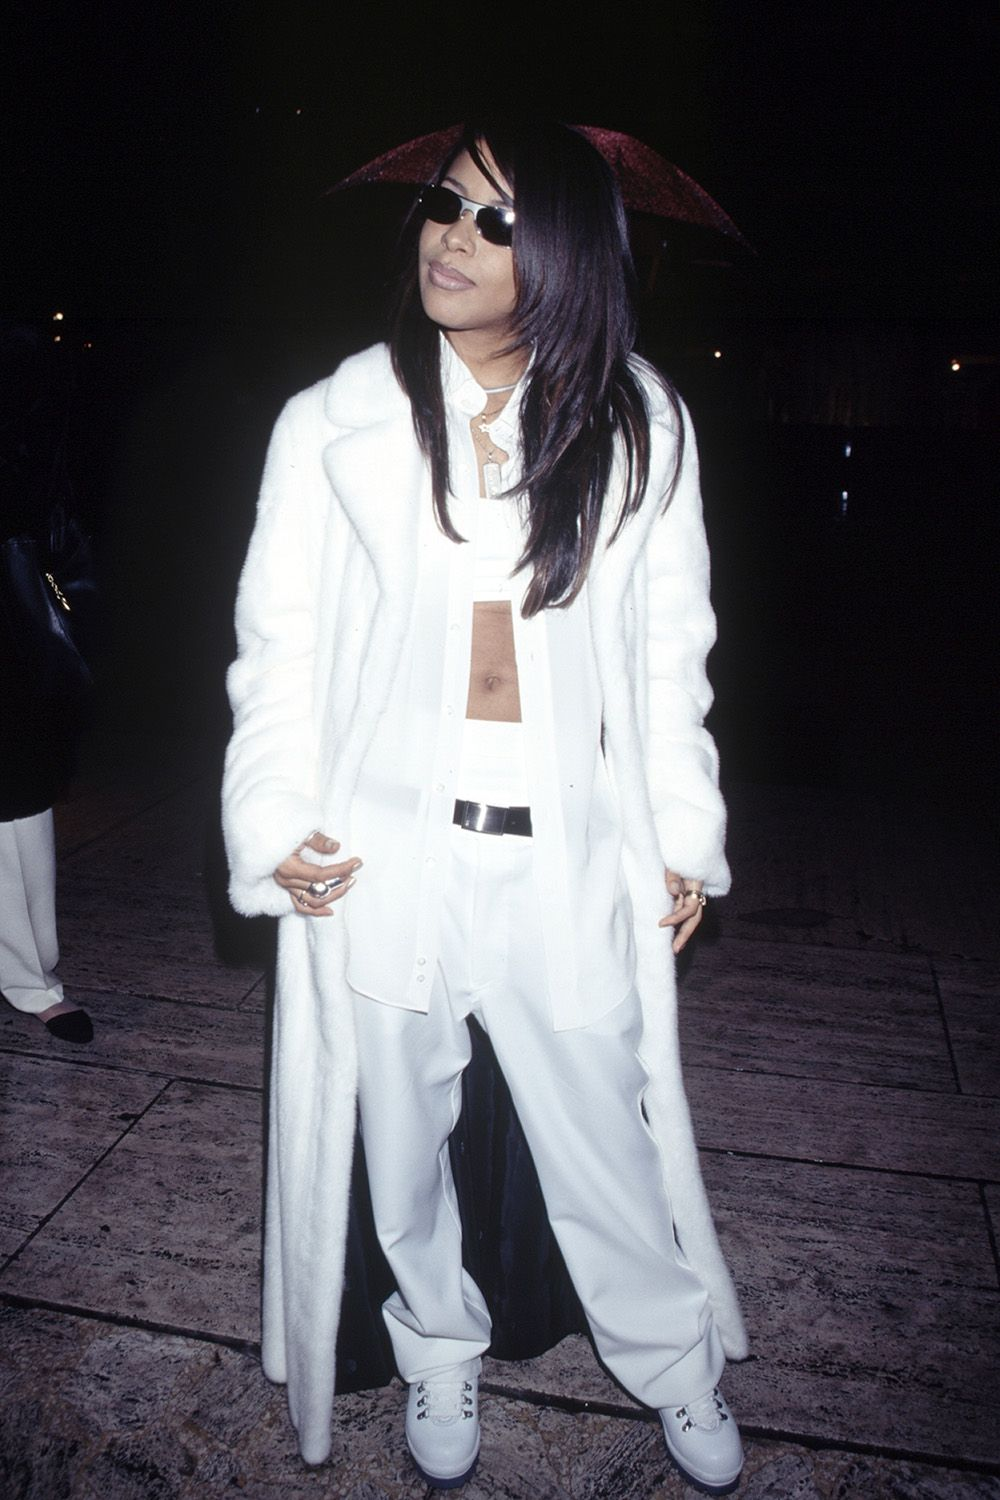 <p>Wearing all white for a night out, 1995</p>